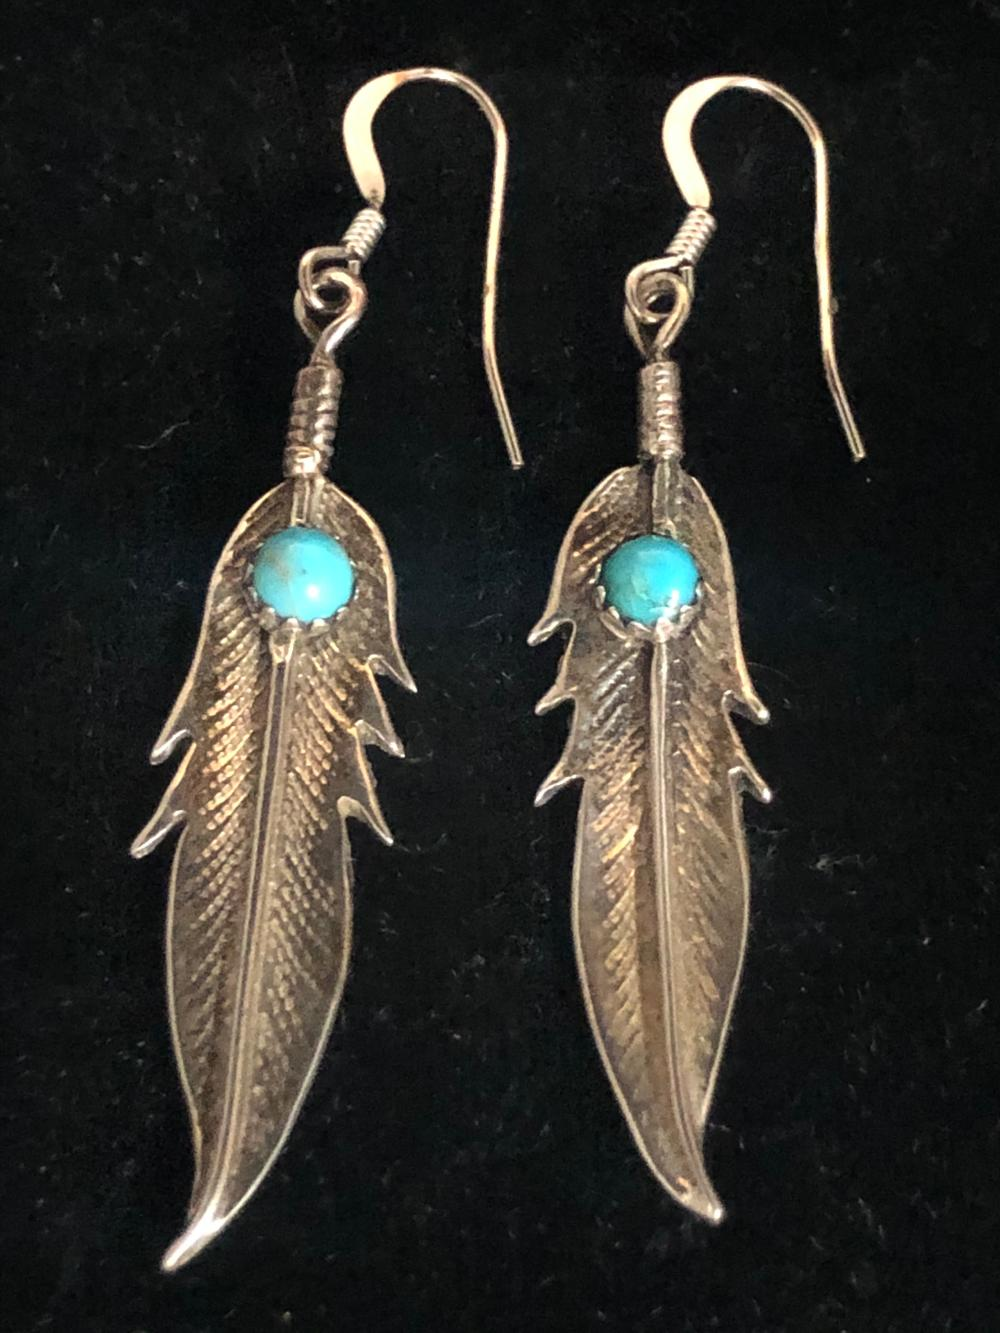 Feather sterling silver earrings with turquoise stone